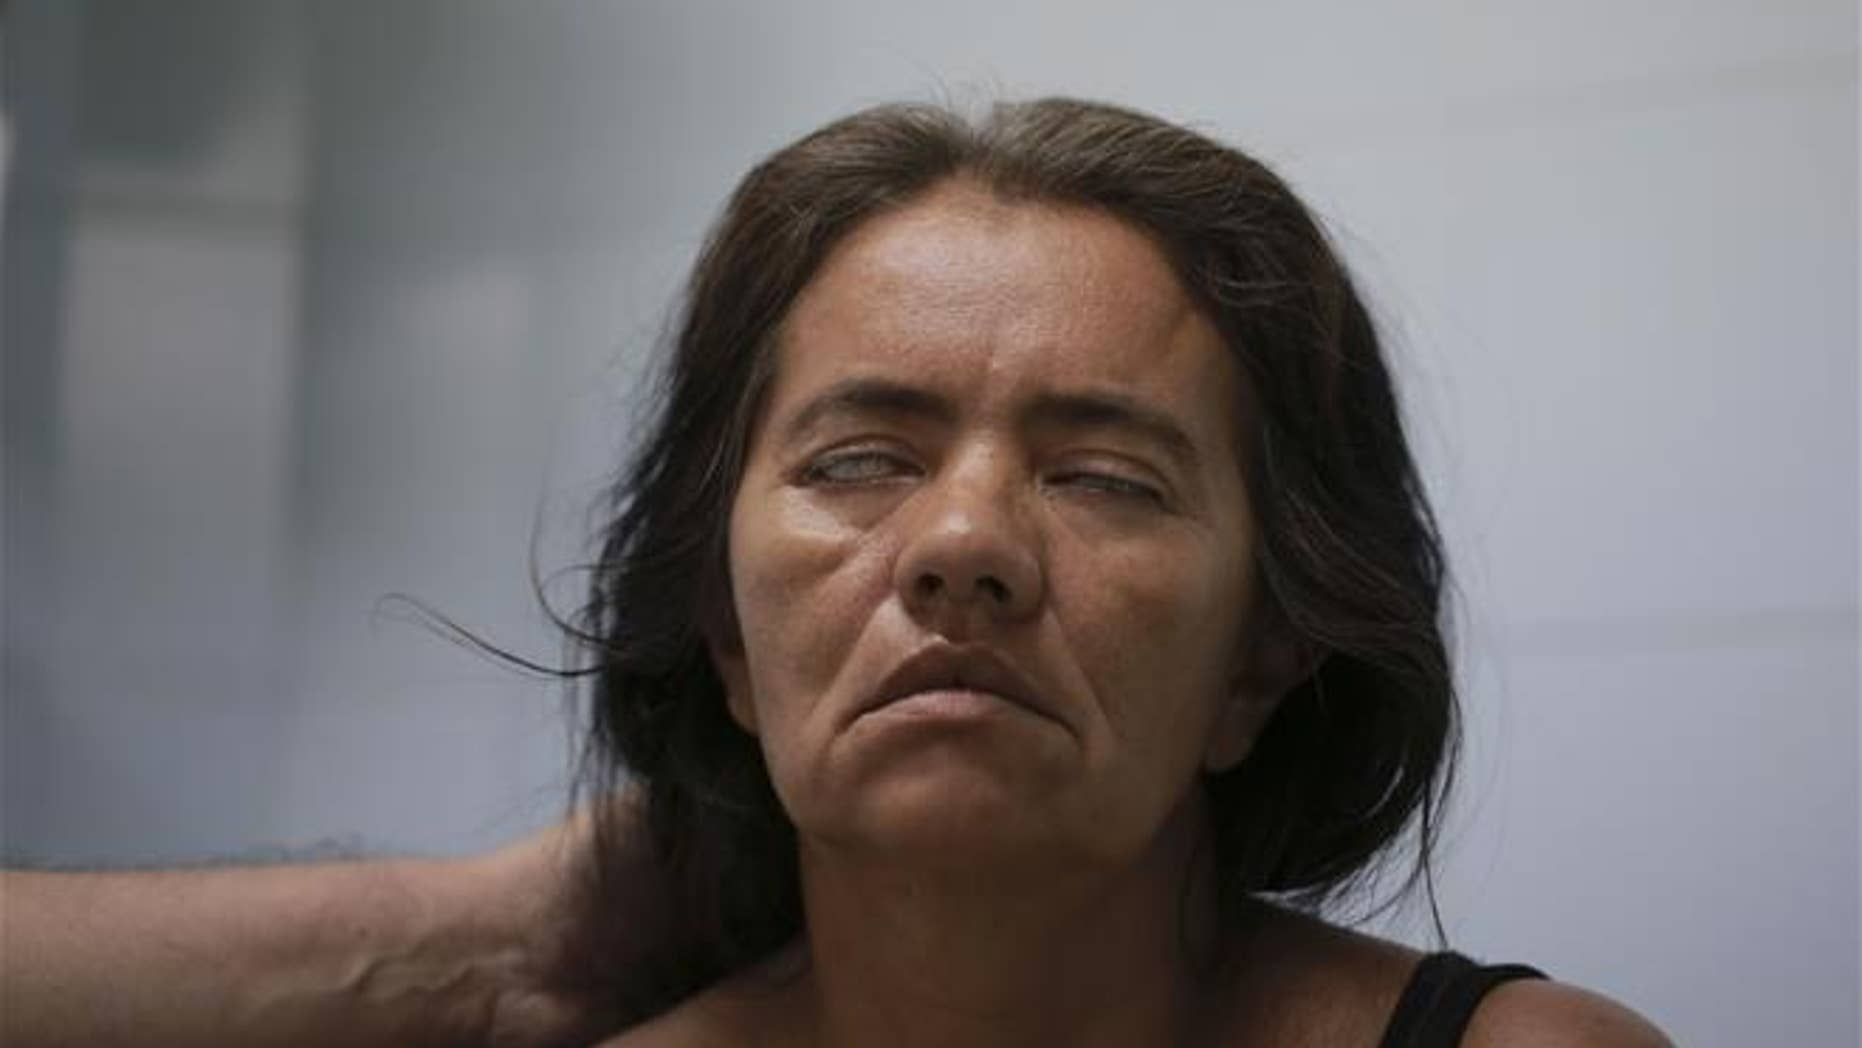 A patient fails to close her eyes as a neurologist tests her facial muscles at a hospital in Cucuta, Norte de Santander state, Colombia, on Feb. 11, 2016. The woman was diagnosed with Guillain-Barre syndrome.